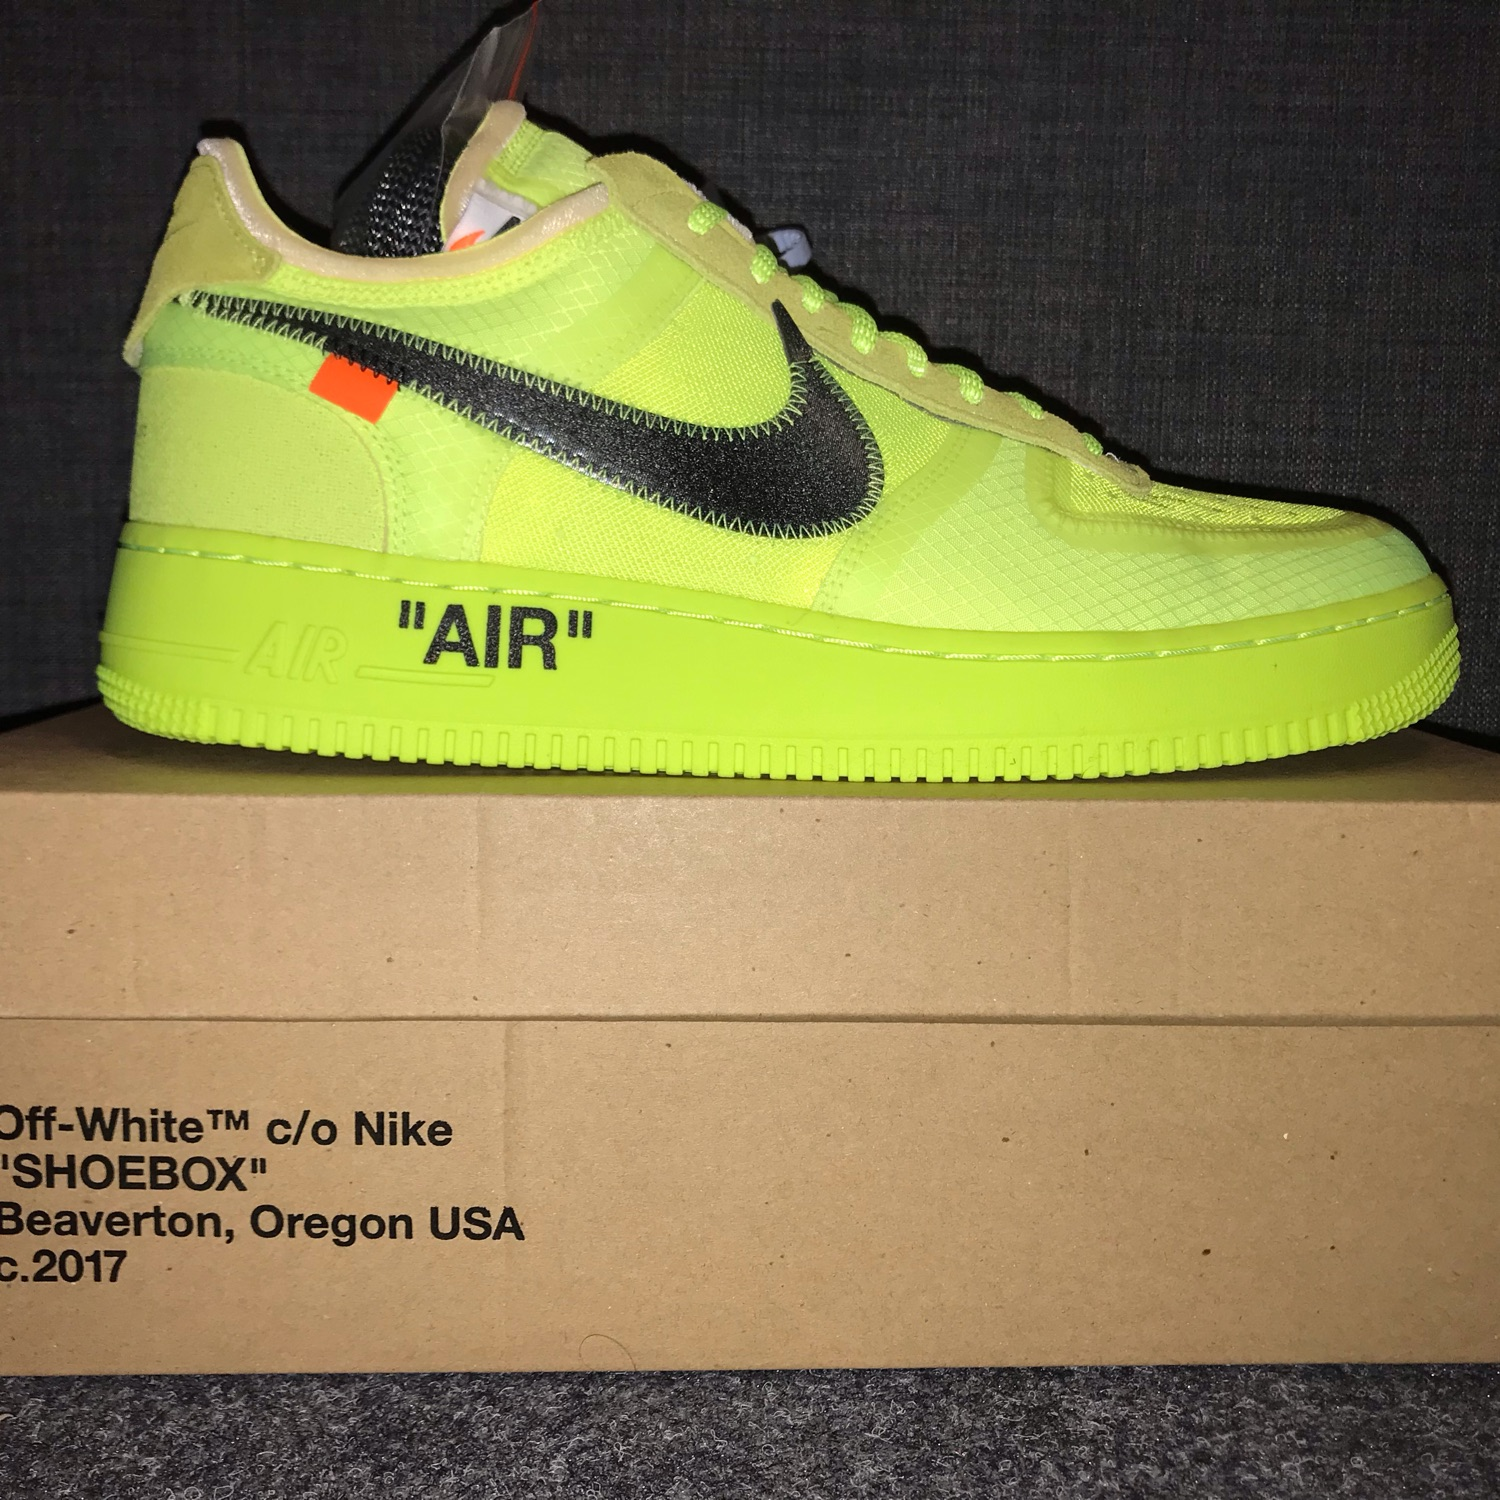 separation shoes cdeed b6f3c Off White X Nike Air Force 1 Volt Size 11 / 45